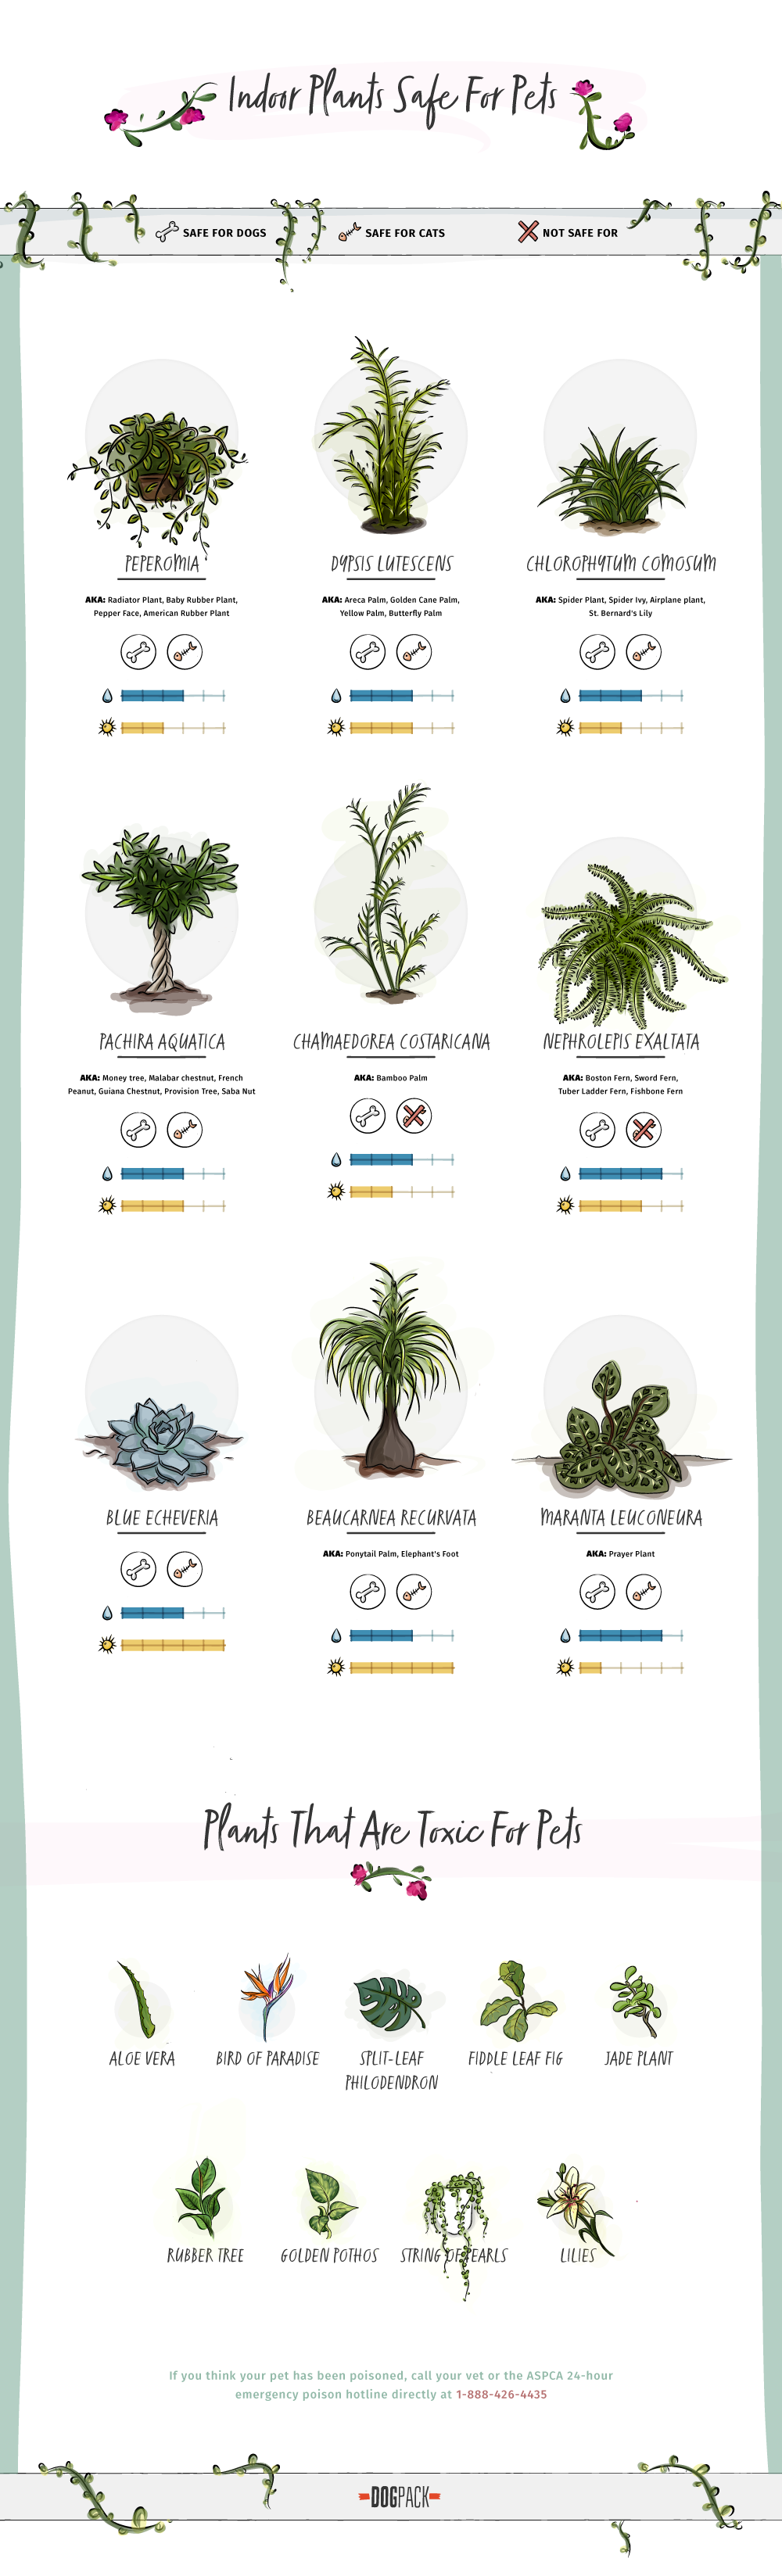 Did You Know That These Common Indoor Plants Are Poisonous For Pets ...